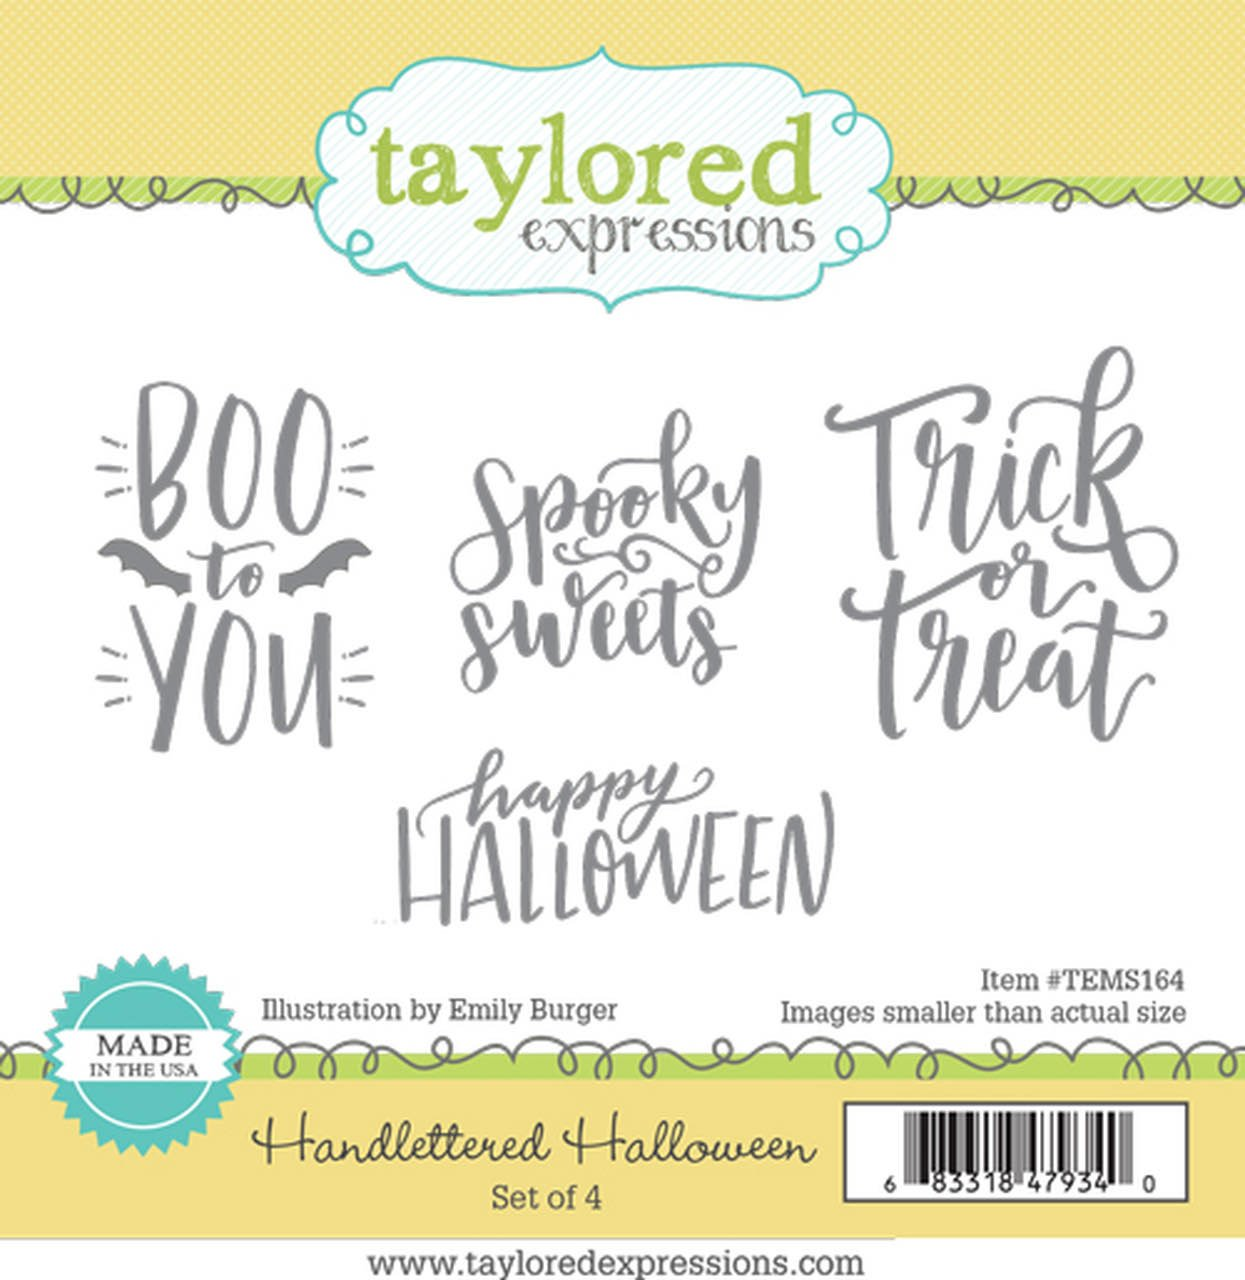 Taylored Expressions - Handlettered Halloween Dies